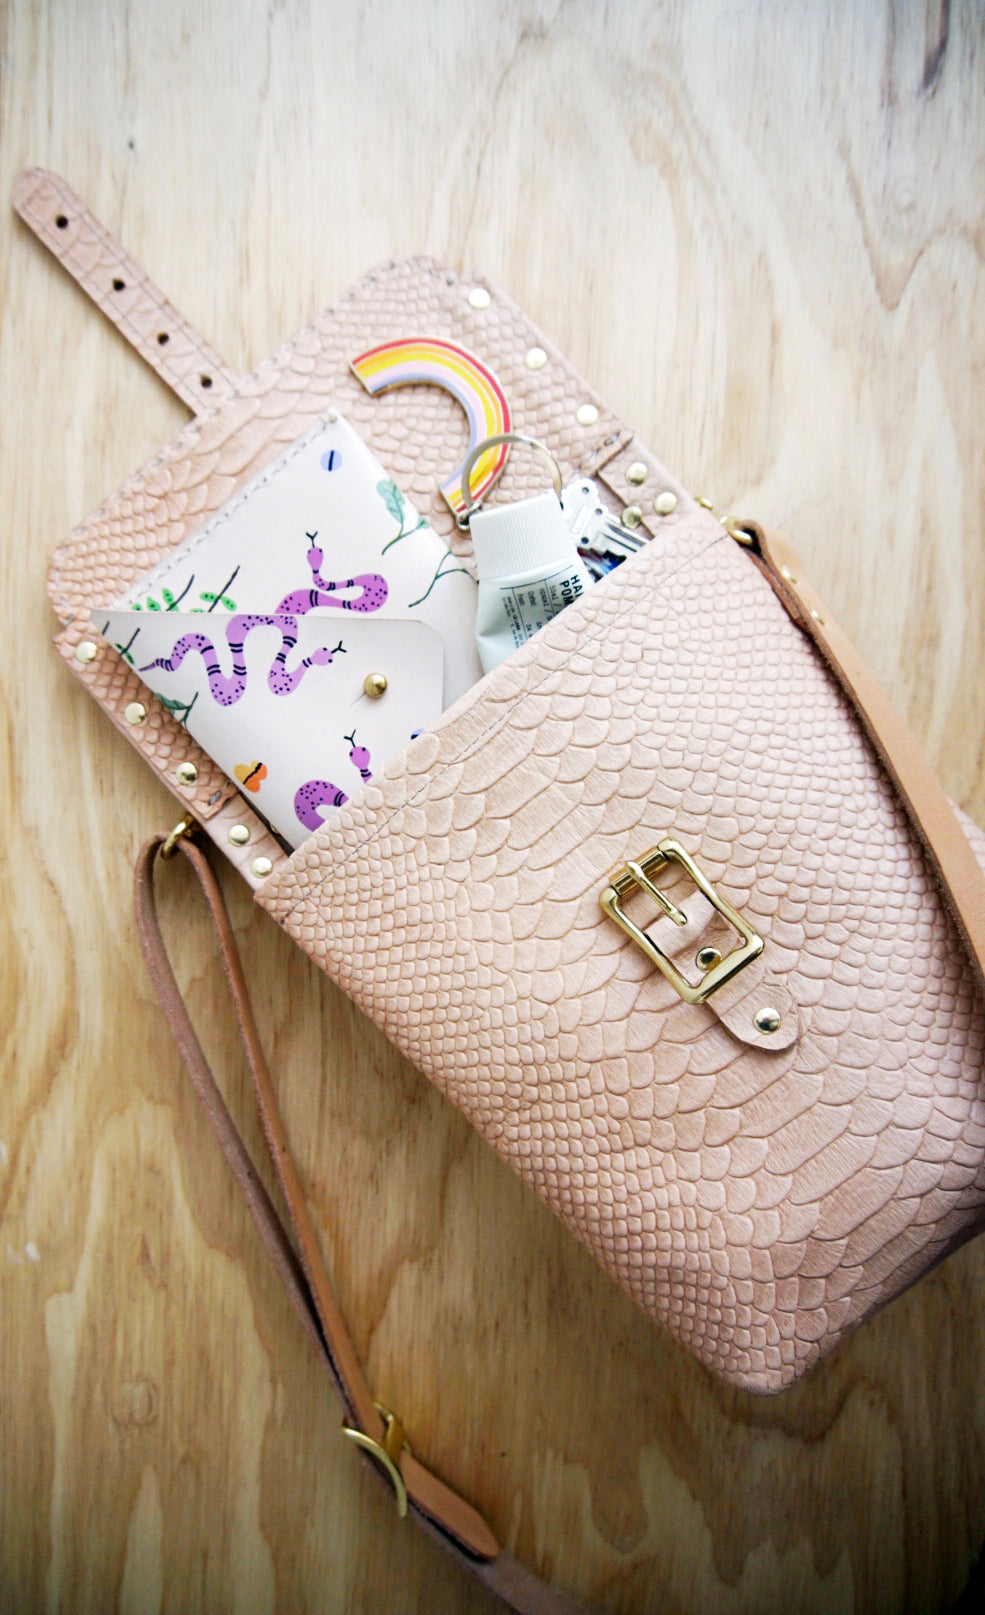 Mini Mar crossbody bag